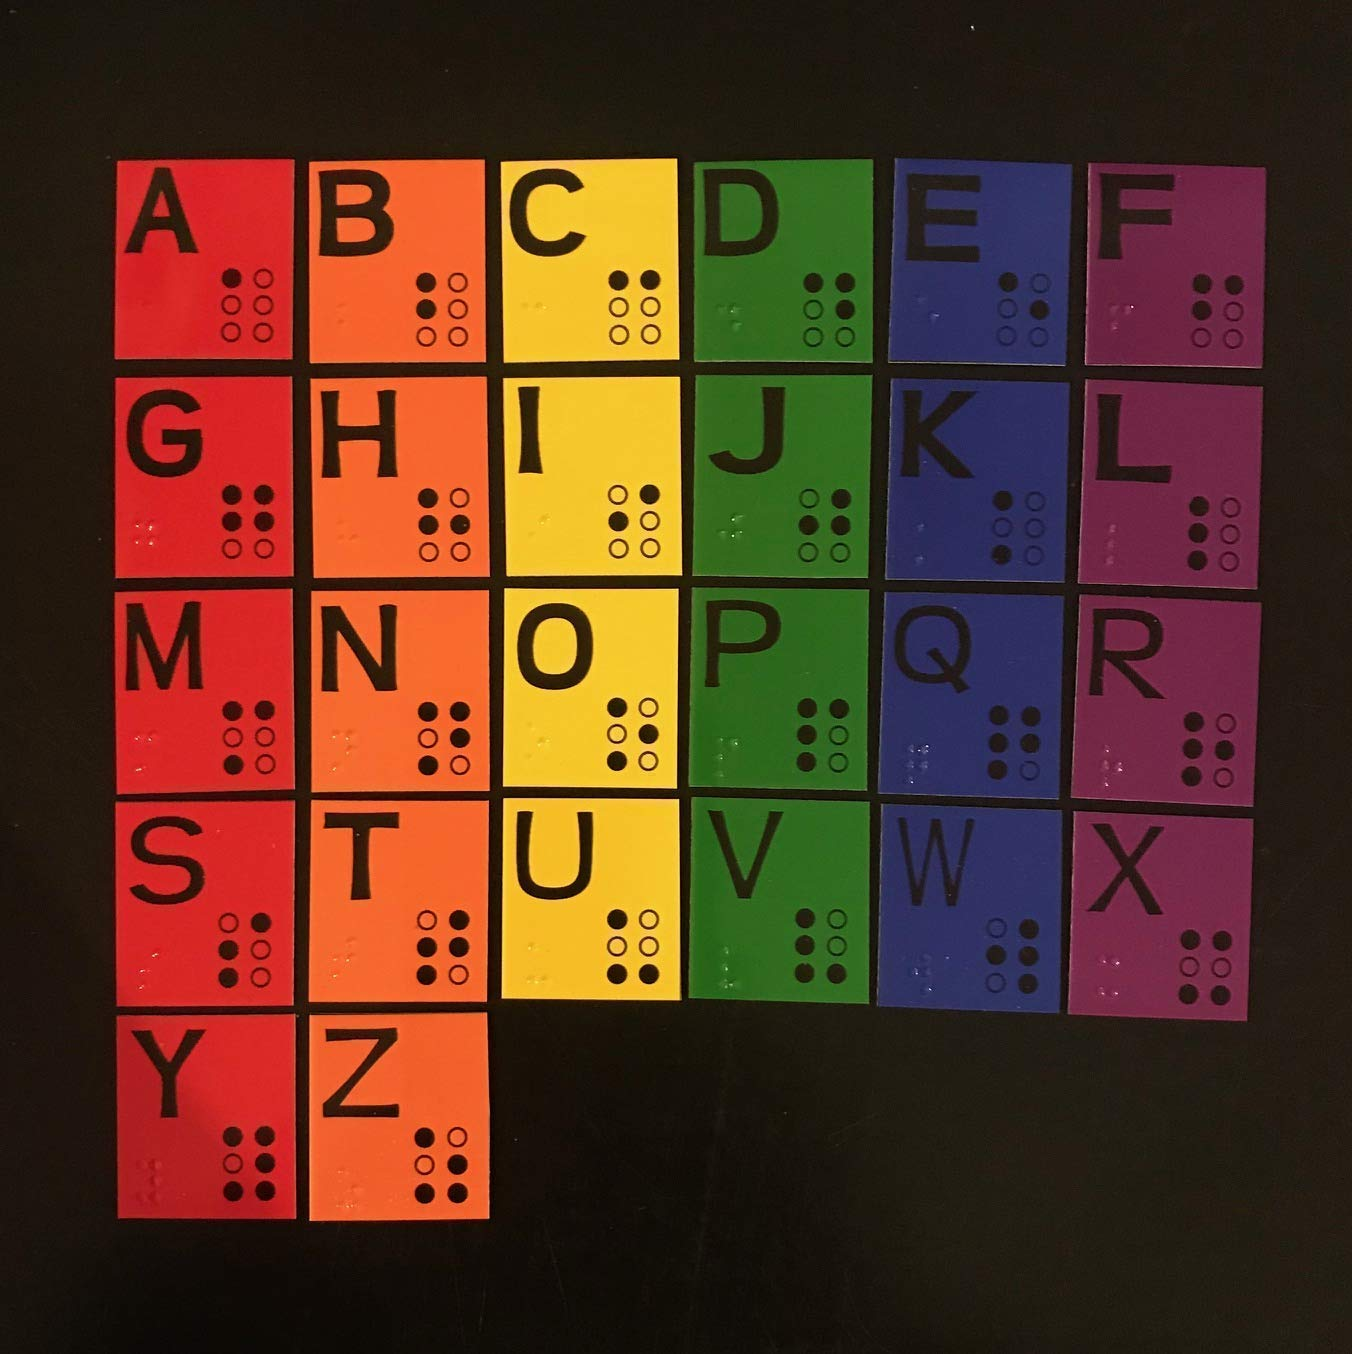 Magnetic Braille Alphabet Set for Learning Braille - Low Vision - Now Available in 3 sizes!